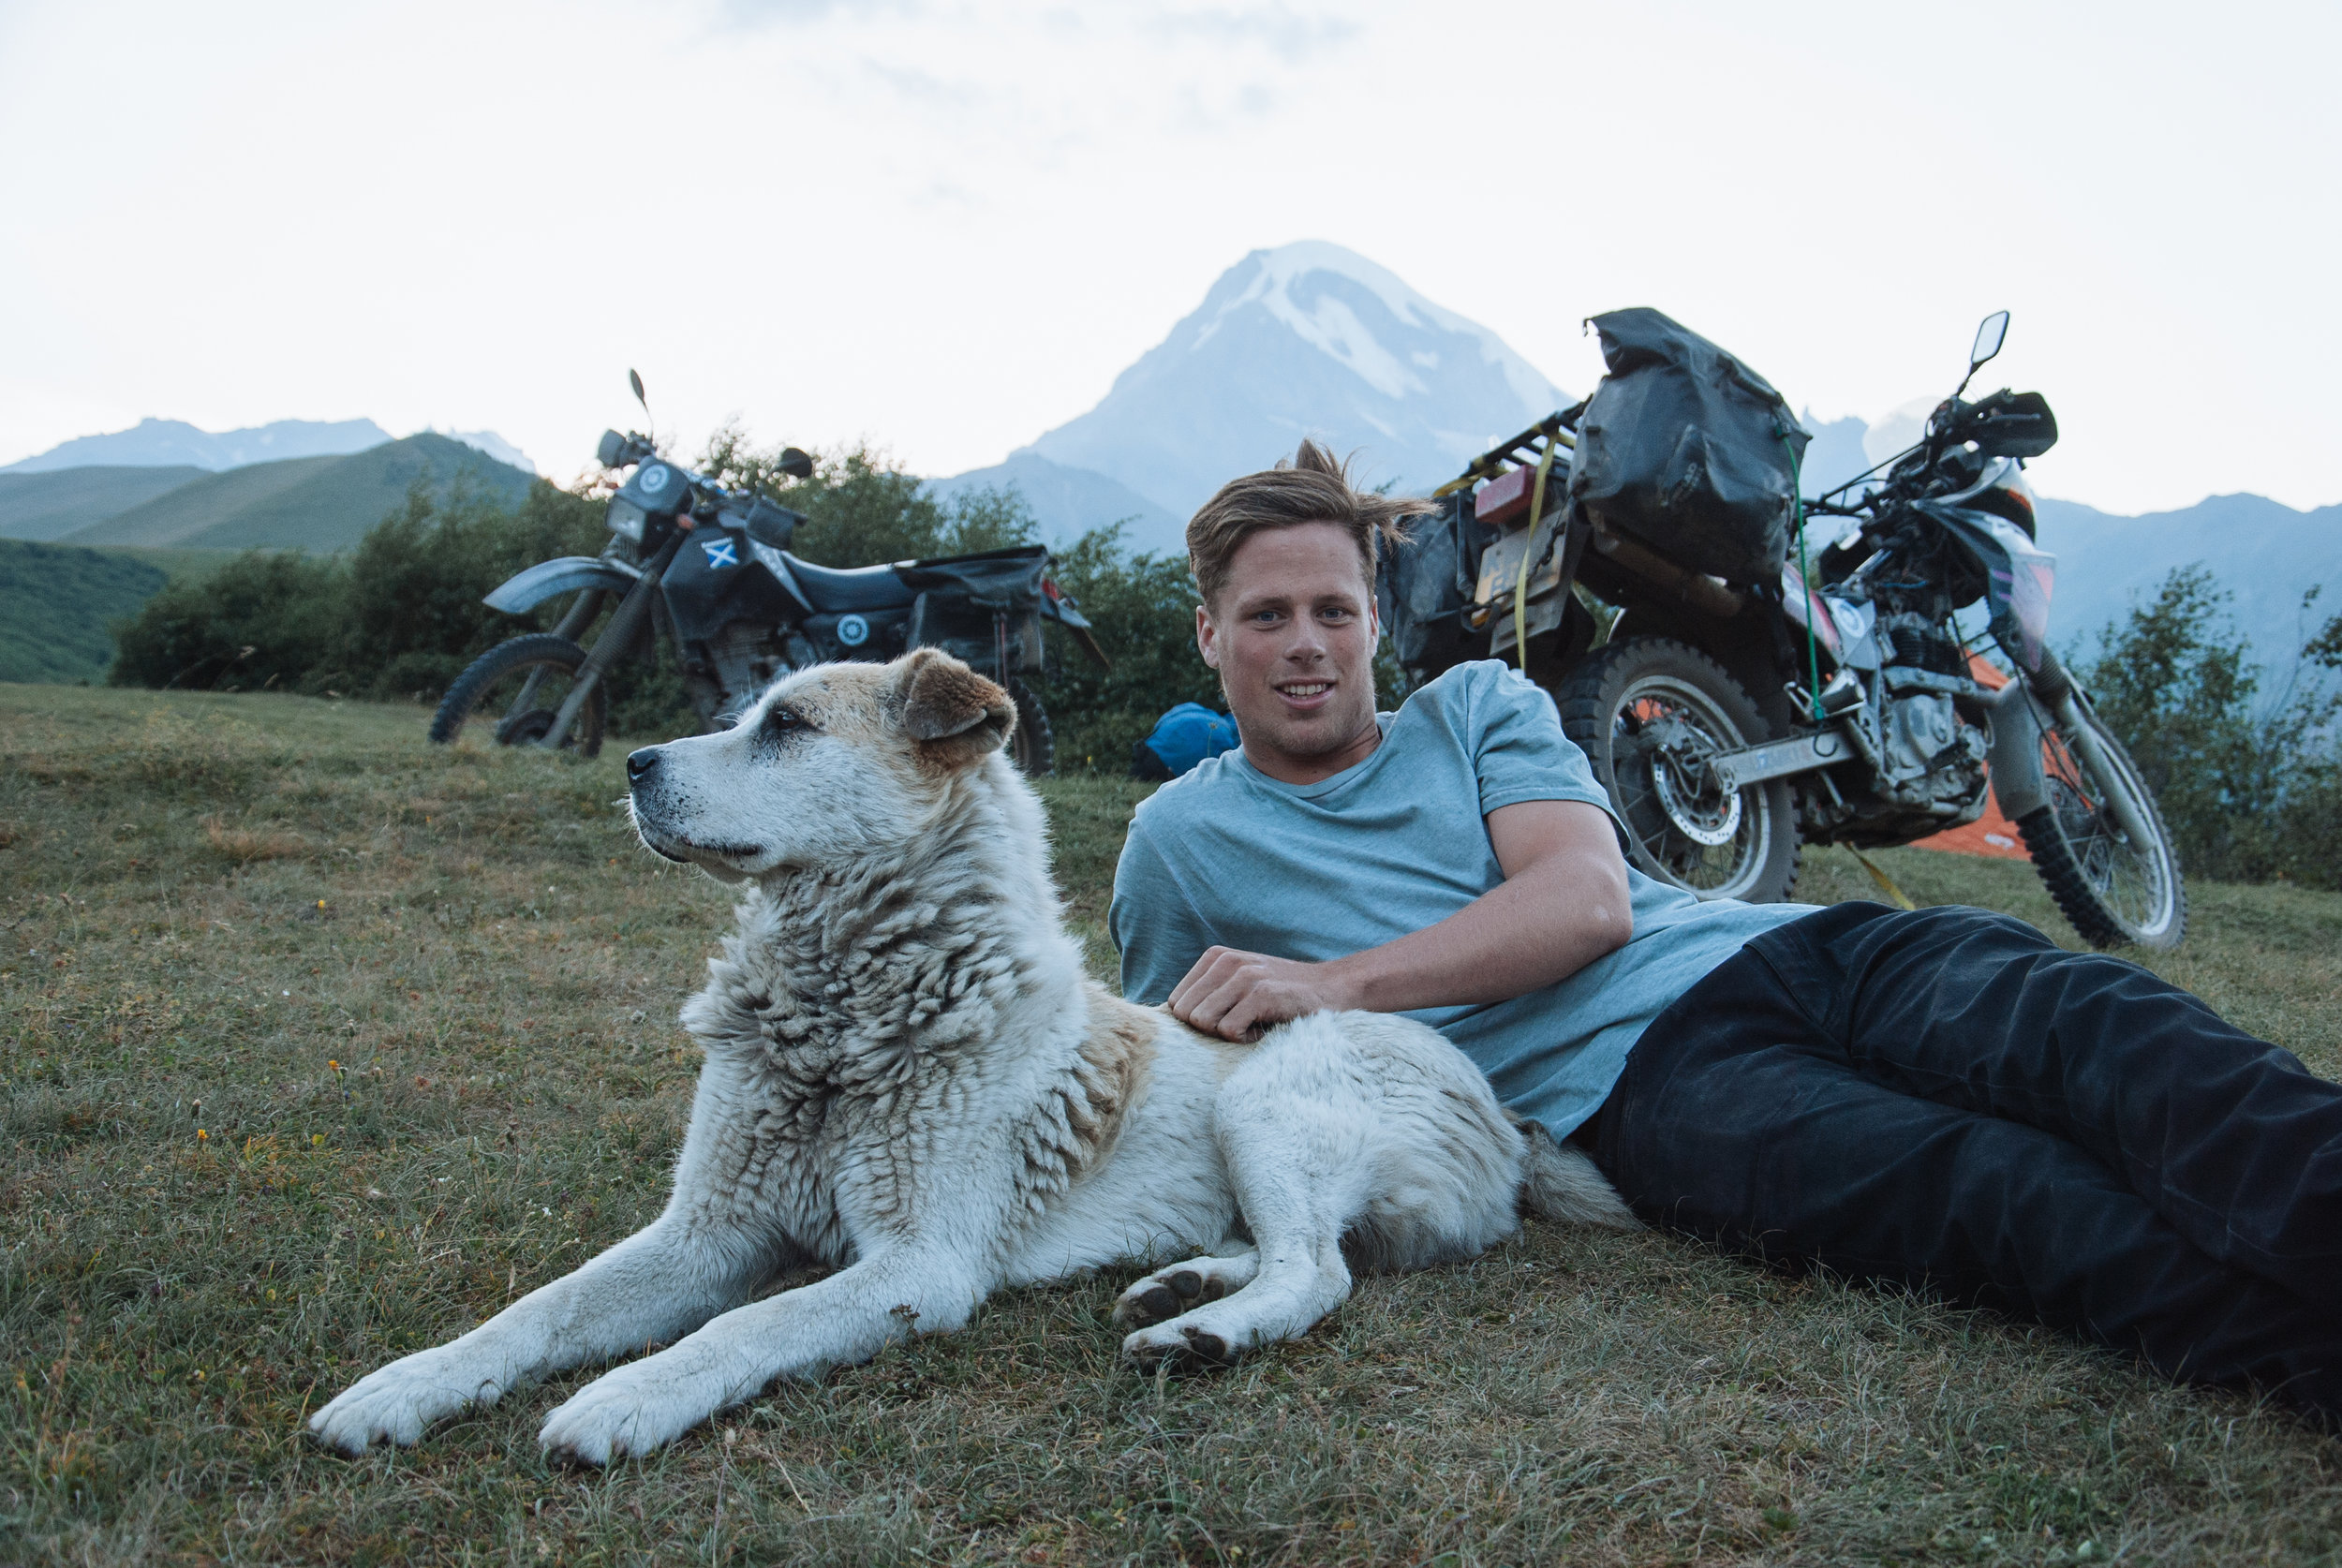 Making friends with dogs in every country